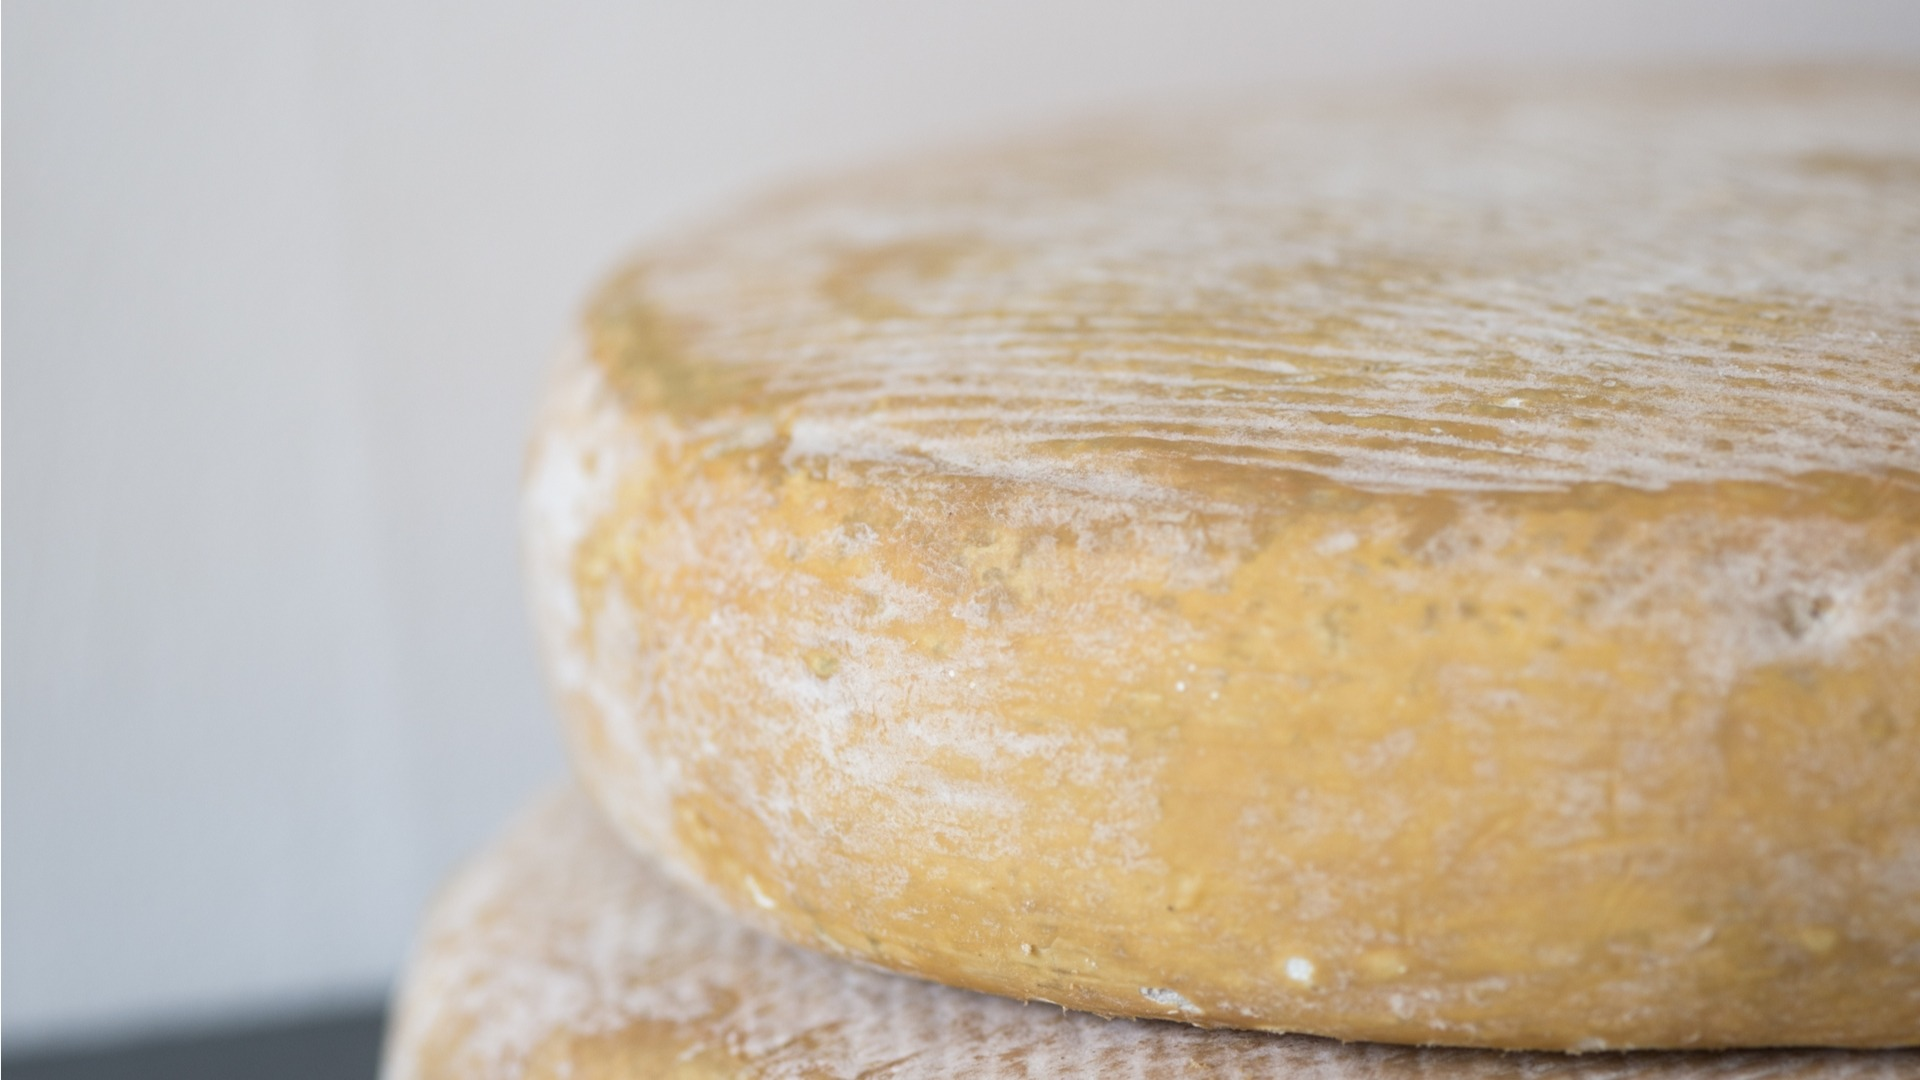 durrus, cows milk, washed rind, irish